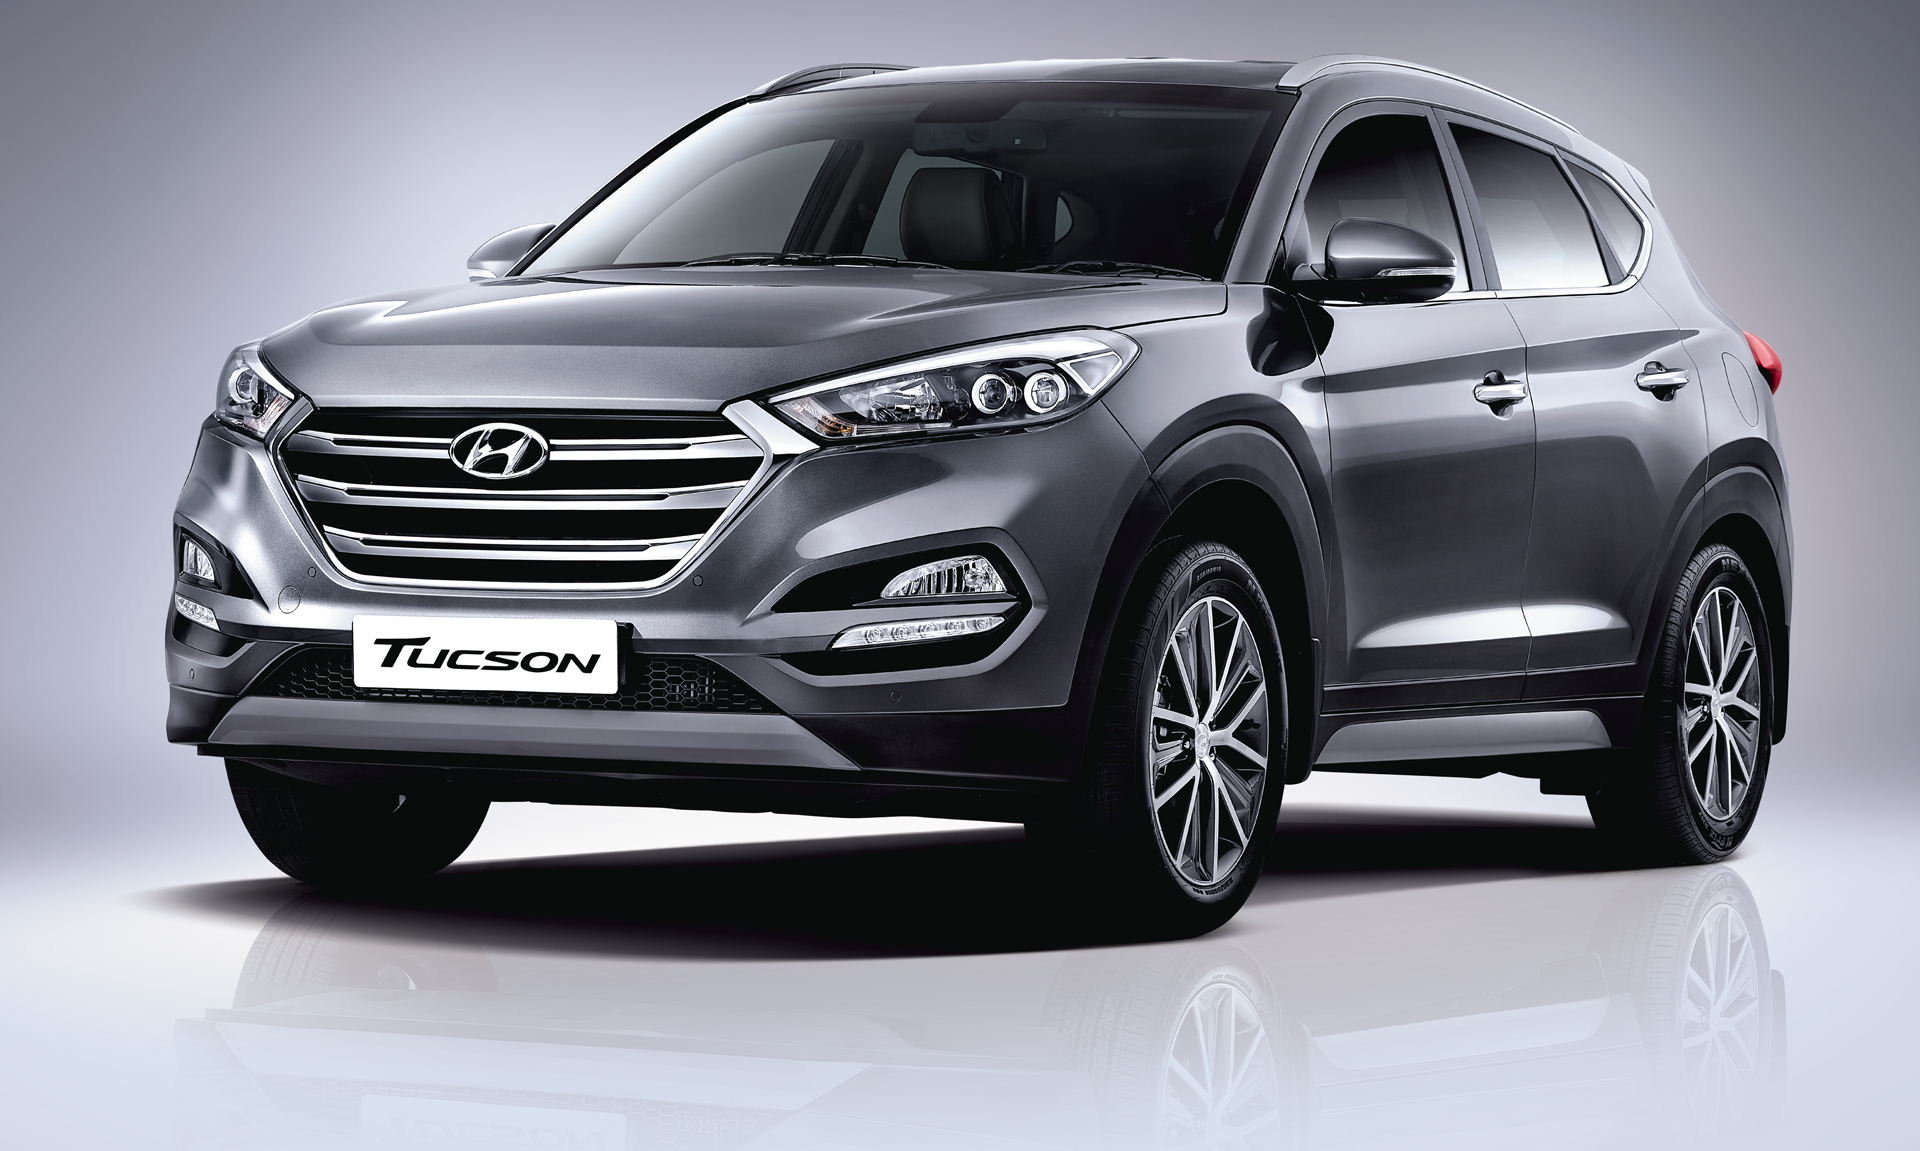 2017 Hyundai Tucson Front Side View Uhd Wallpaper Latest